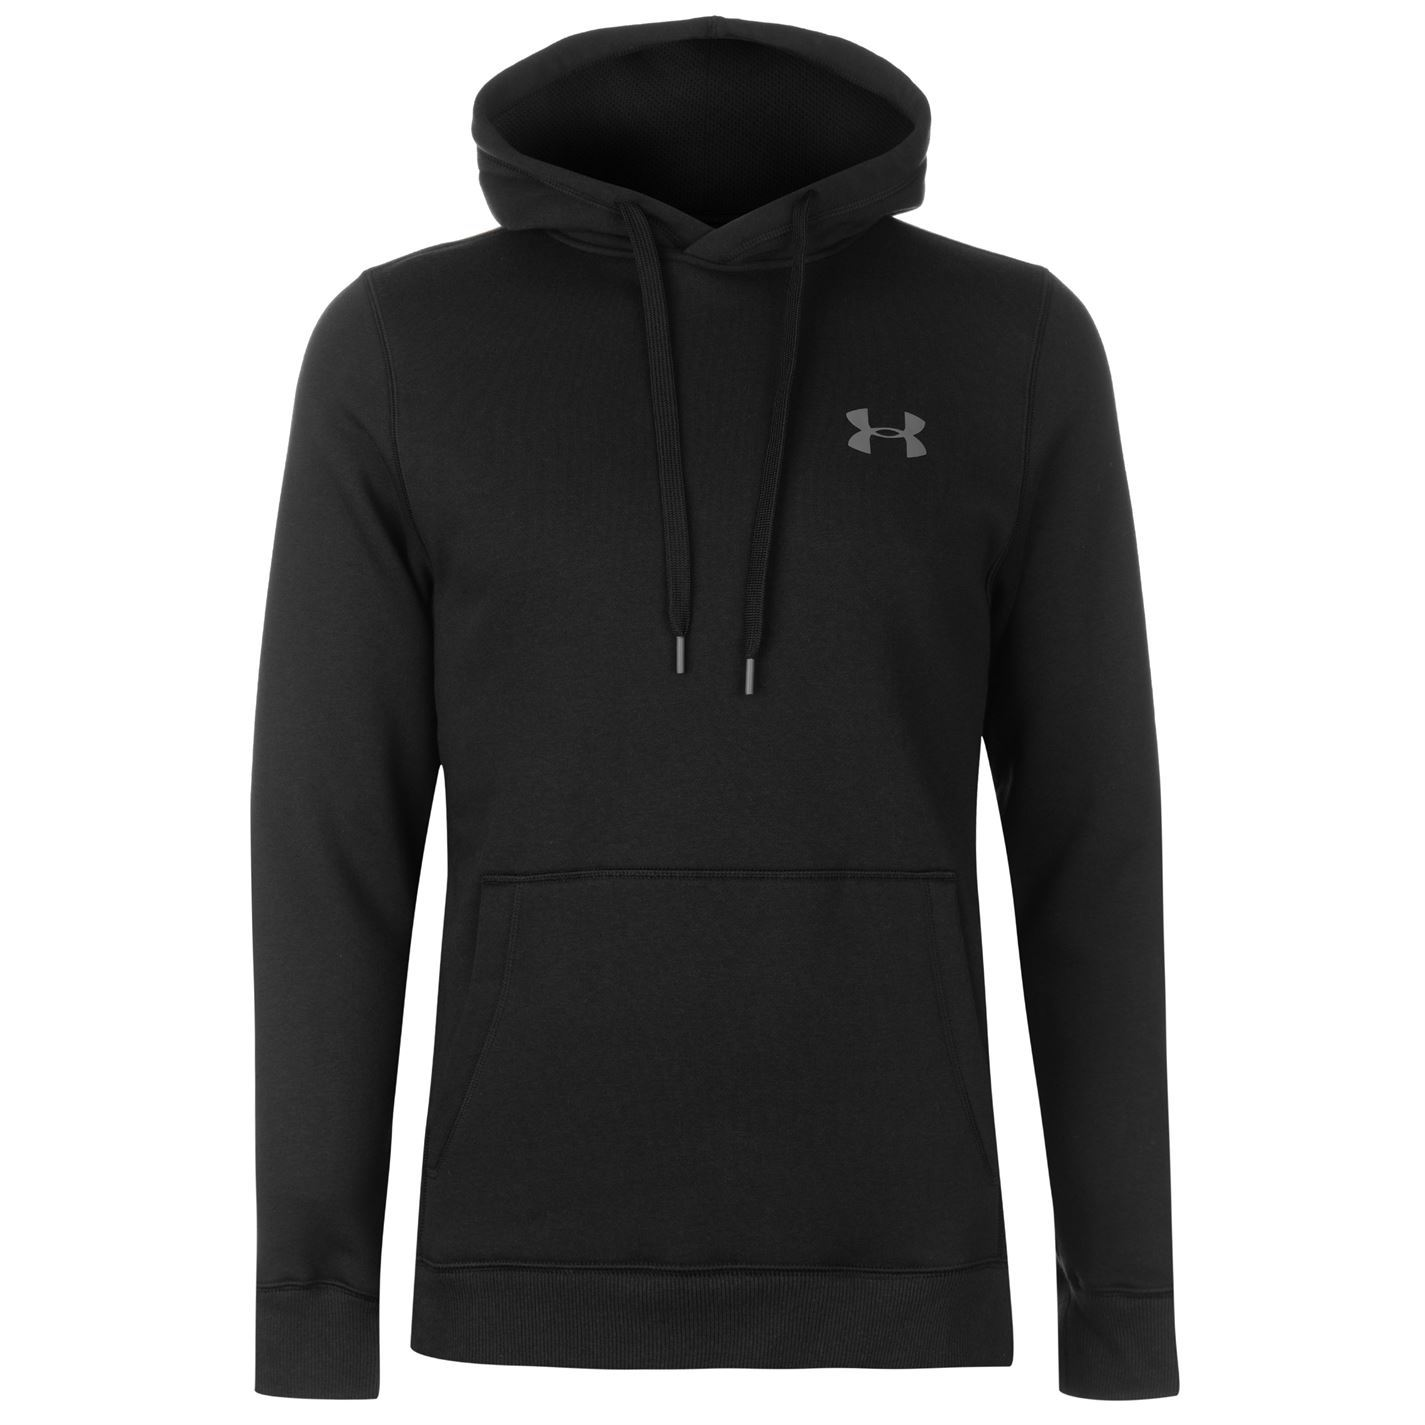 Rival Suéter Sudadera Hoodie Pullover Top Oth Armour Fitted Hoody Hombre Under qWO5xAC1wc